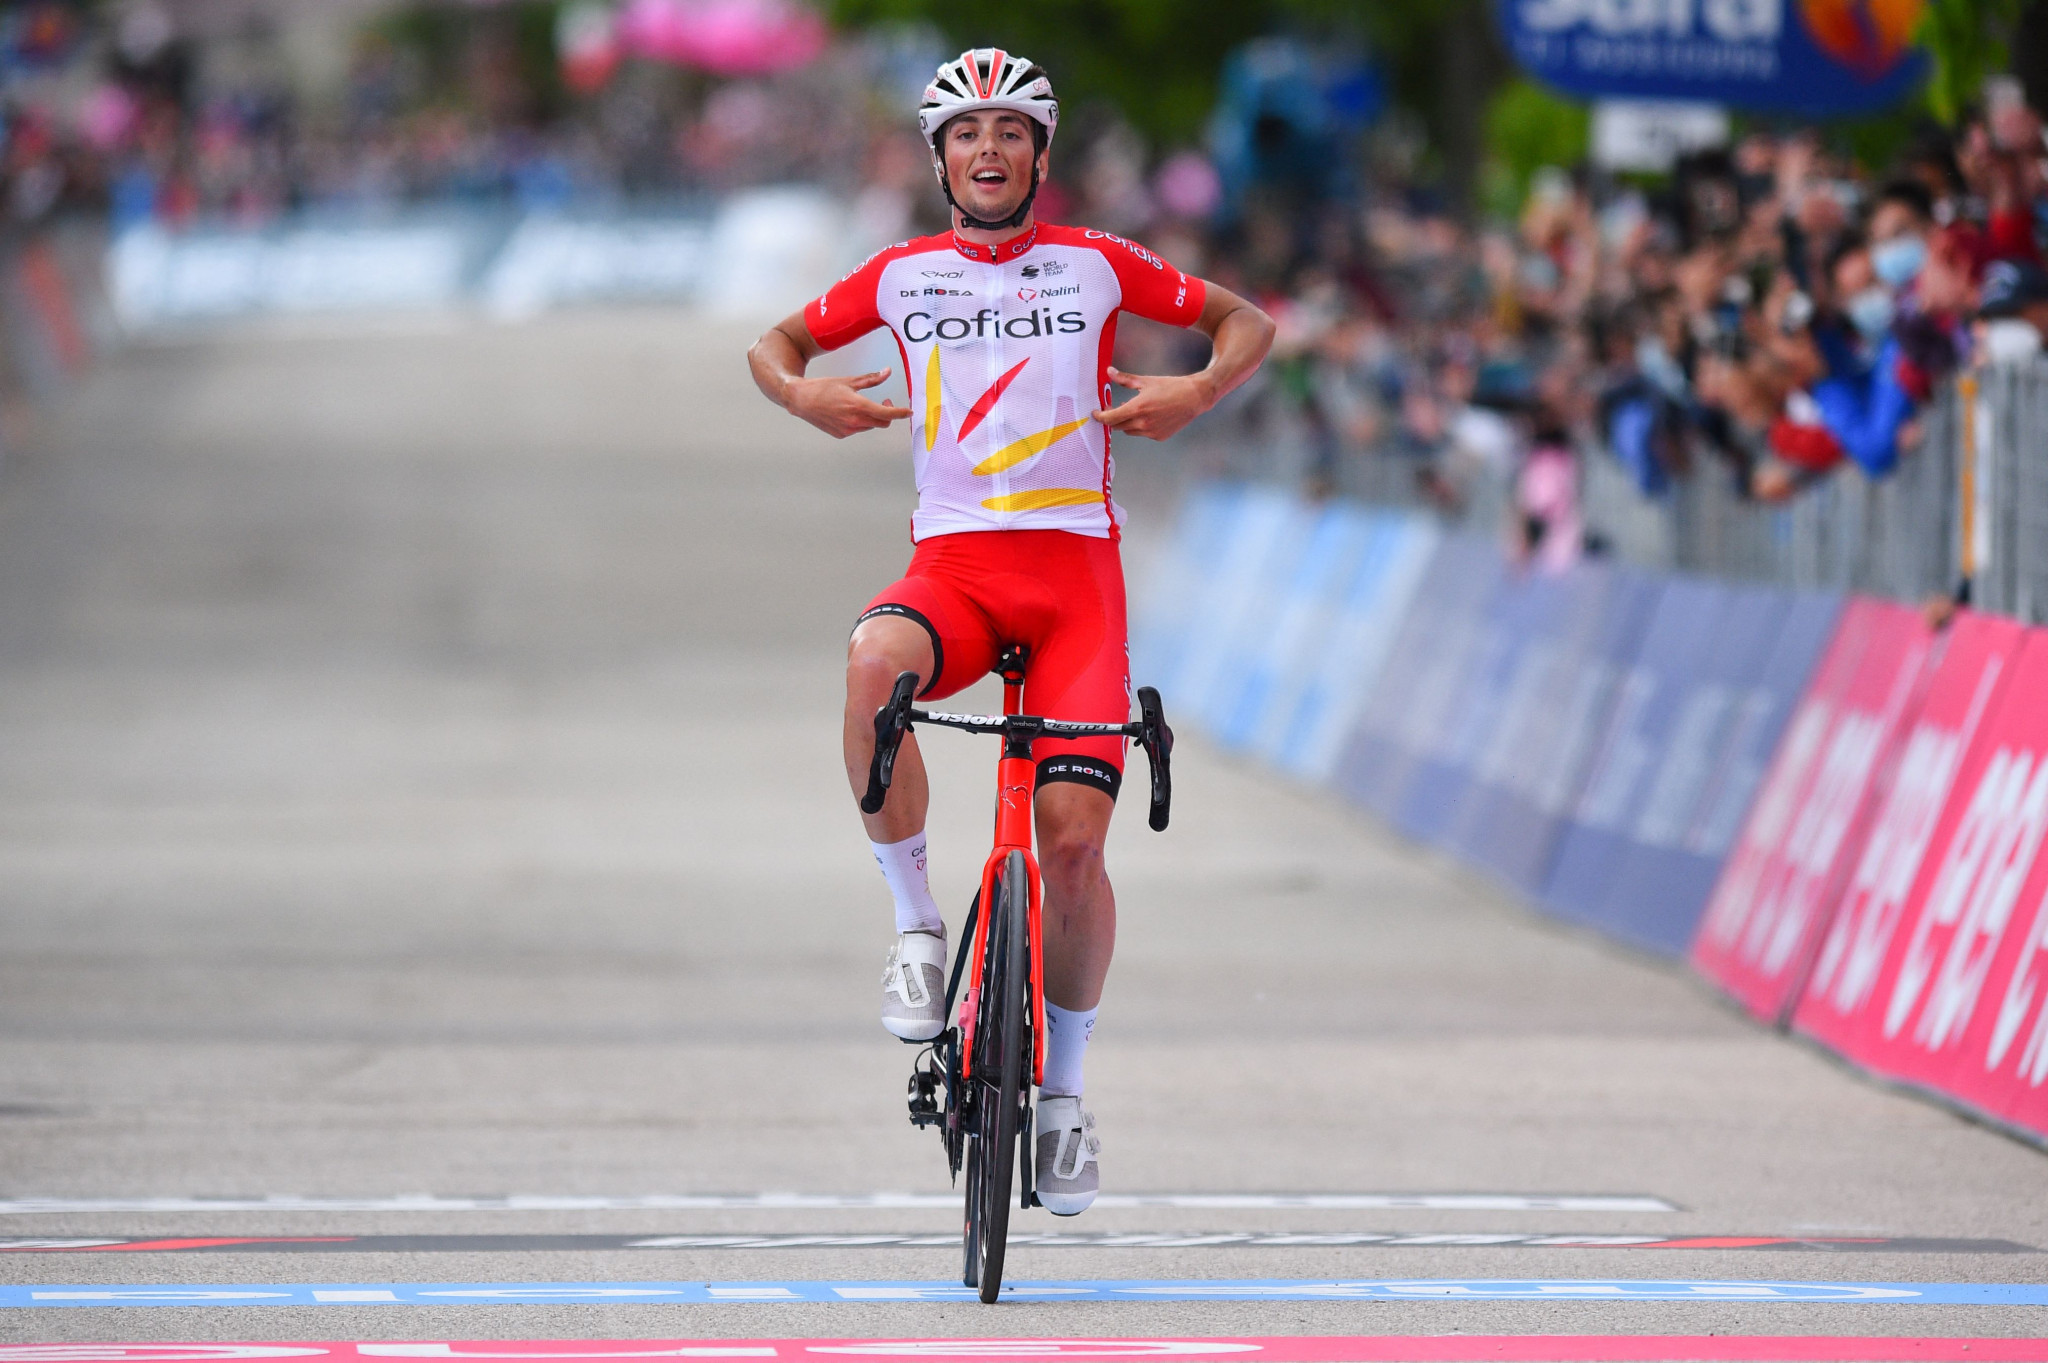 Lafay wins eighth stage of Giro d'Italia from breakaway